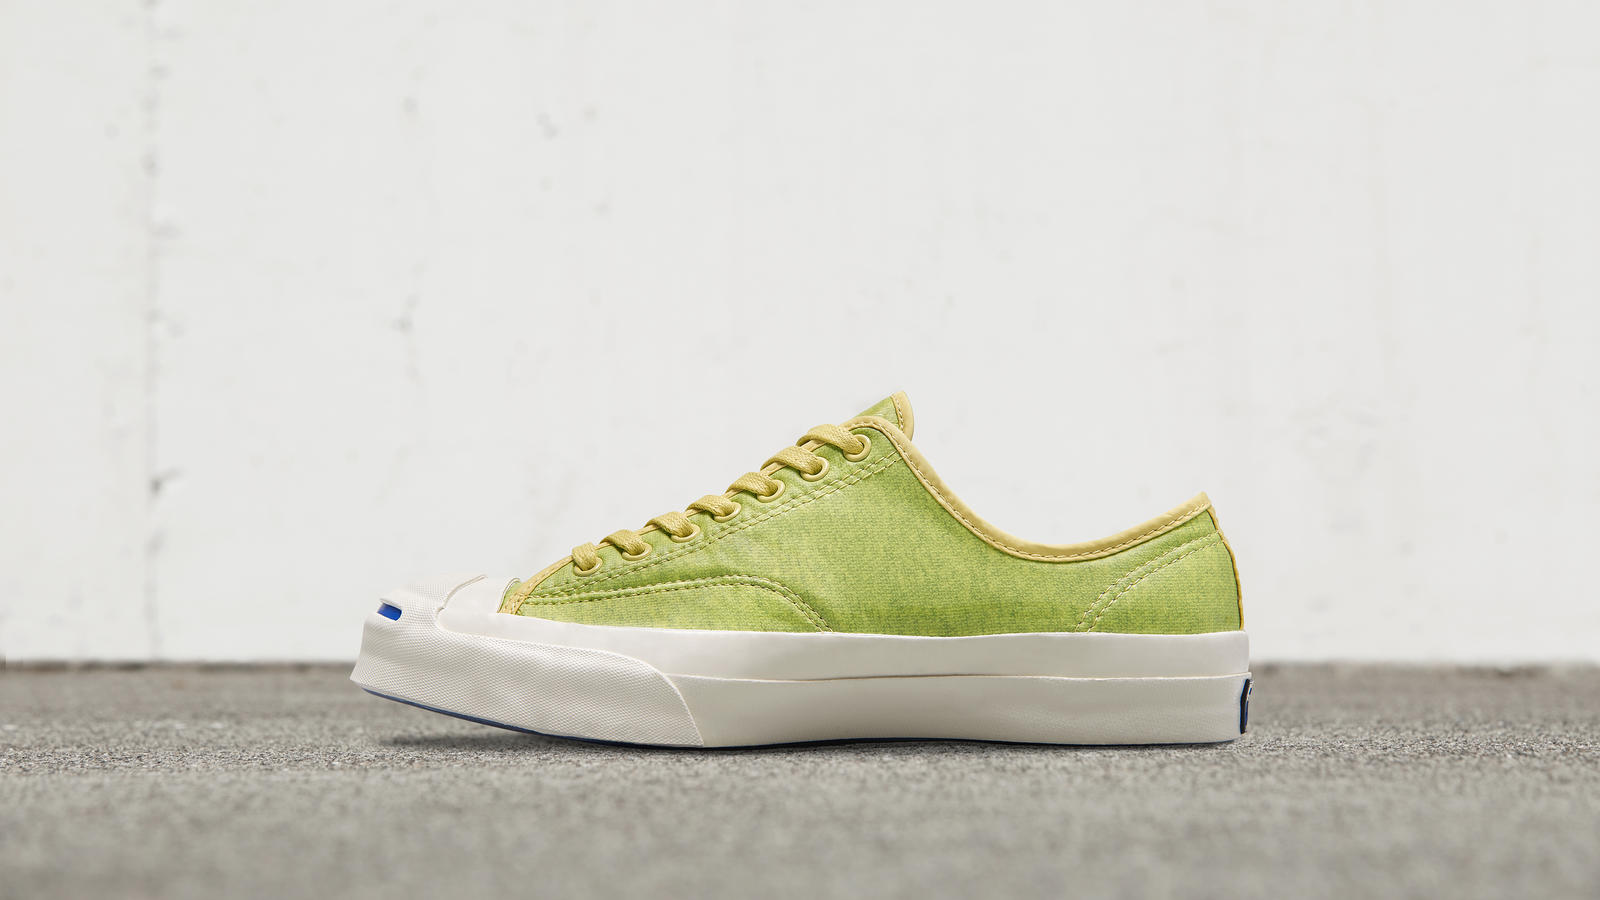 bd338c80785d 160729 converse jp signature green profile hd 1600